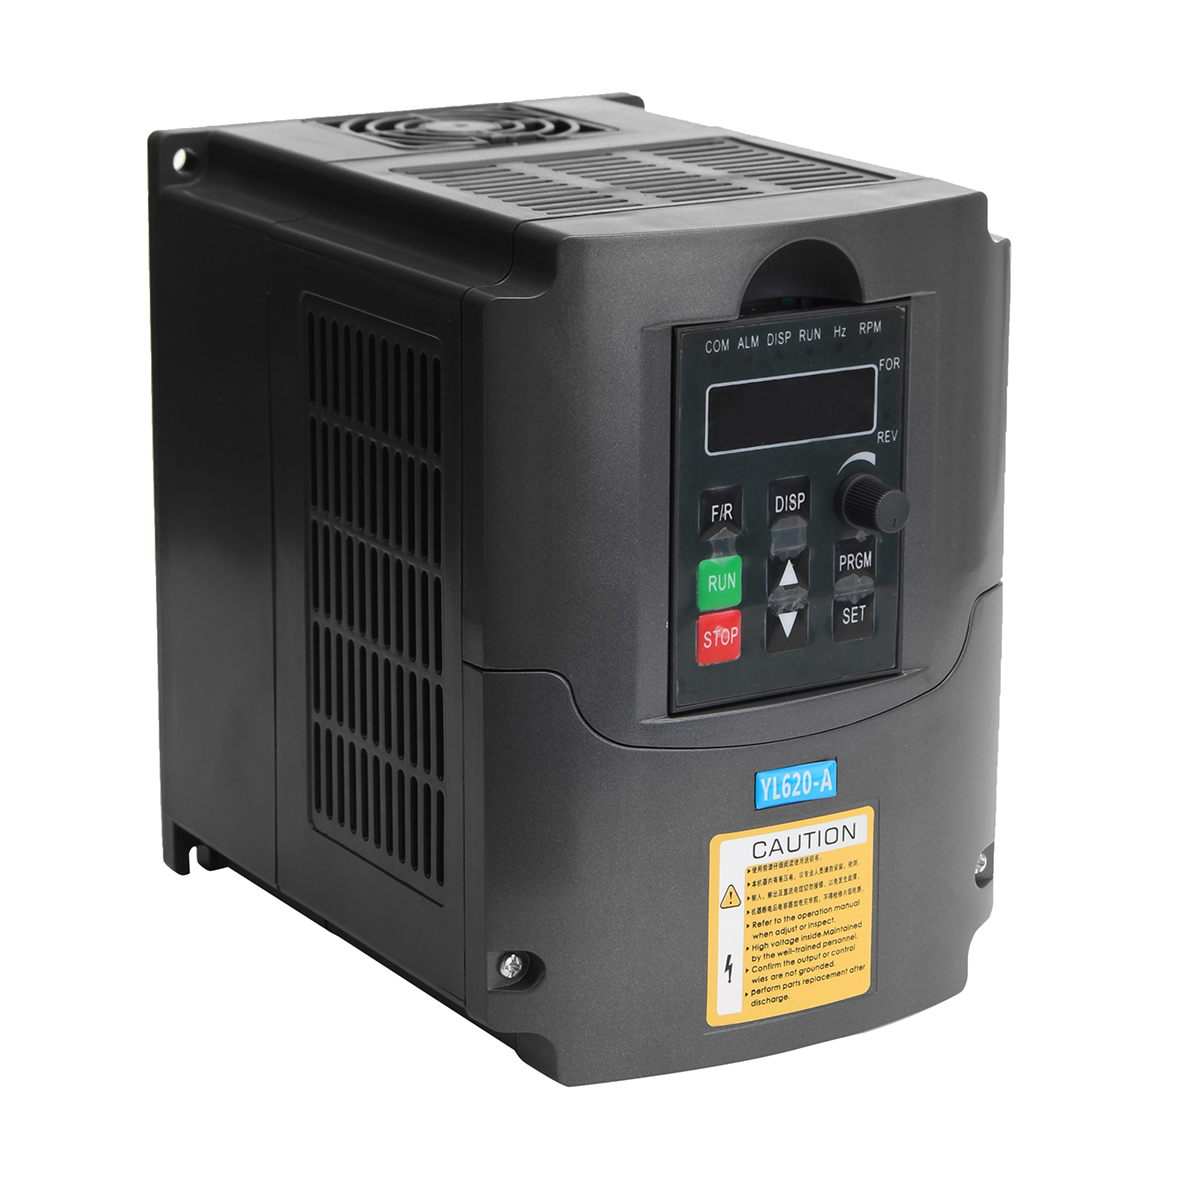 New 2.2KW 220V AC Variable Frequency Inverter Converter 3 Phase Output Built-in PLC Single Phase Space Voltage Vector Modulation new original sgdm 15ada 200v servopack single 3 phase